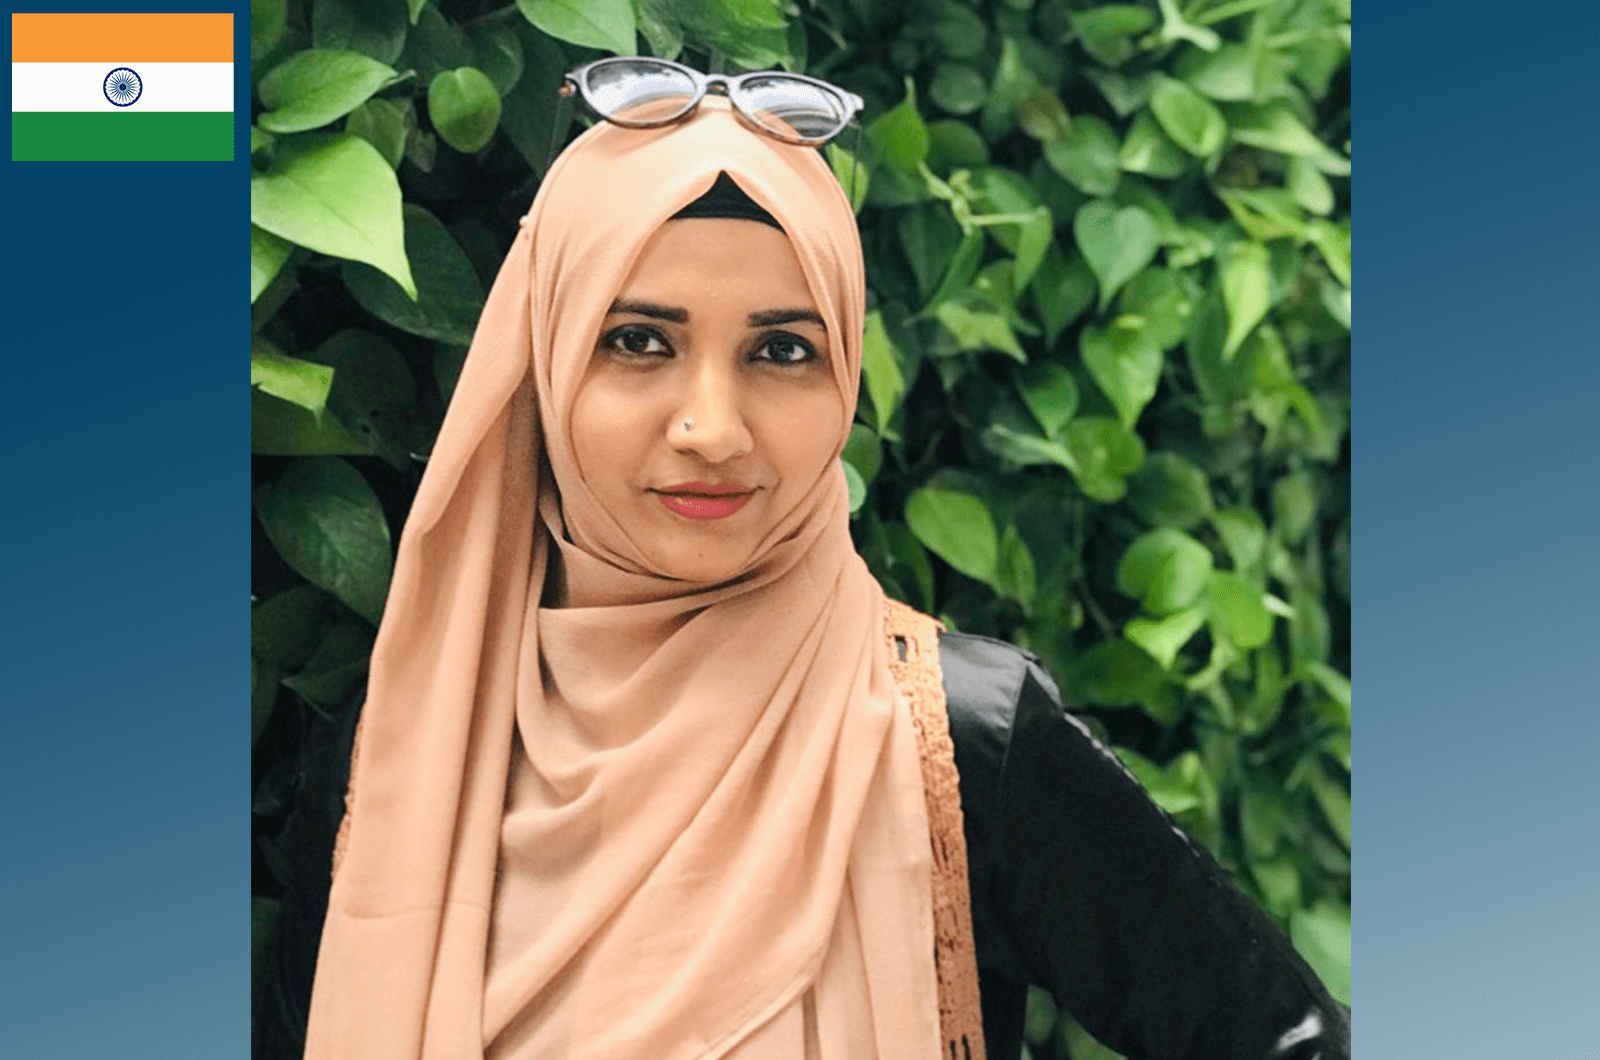 Woman wearing peach-colored hijab with tree in background